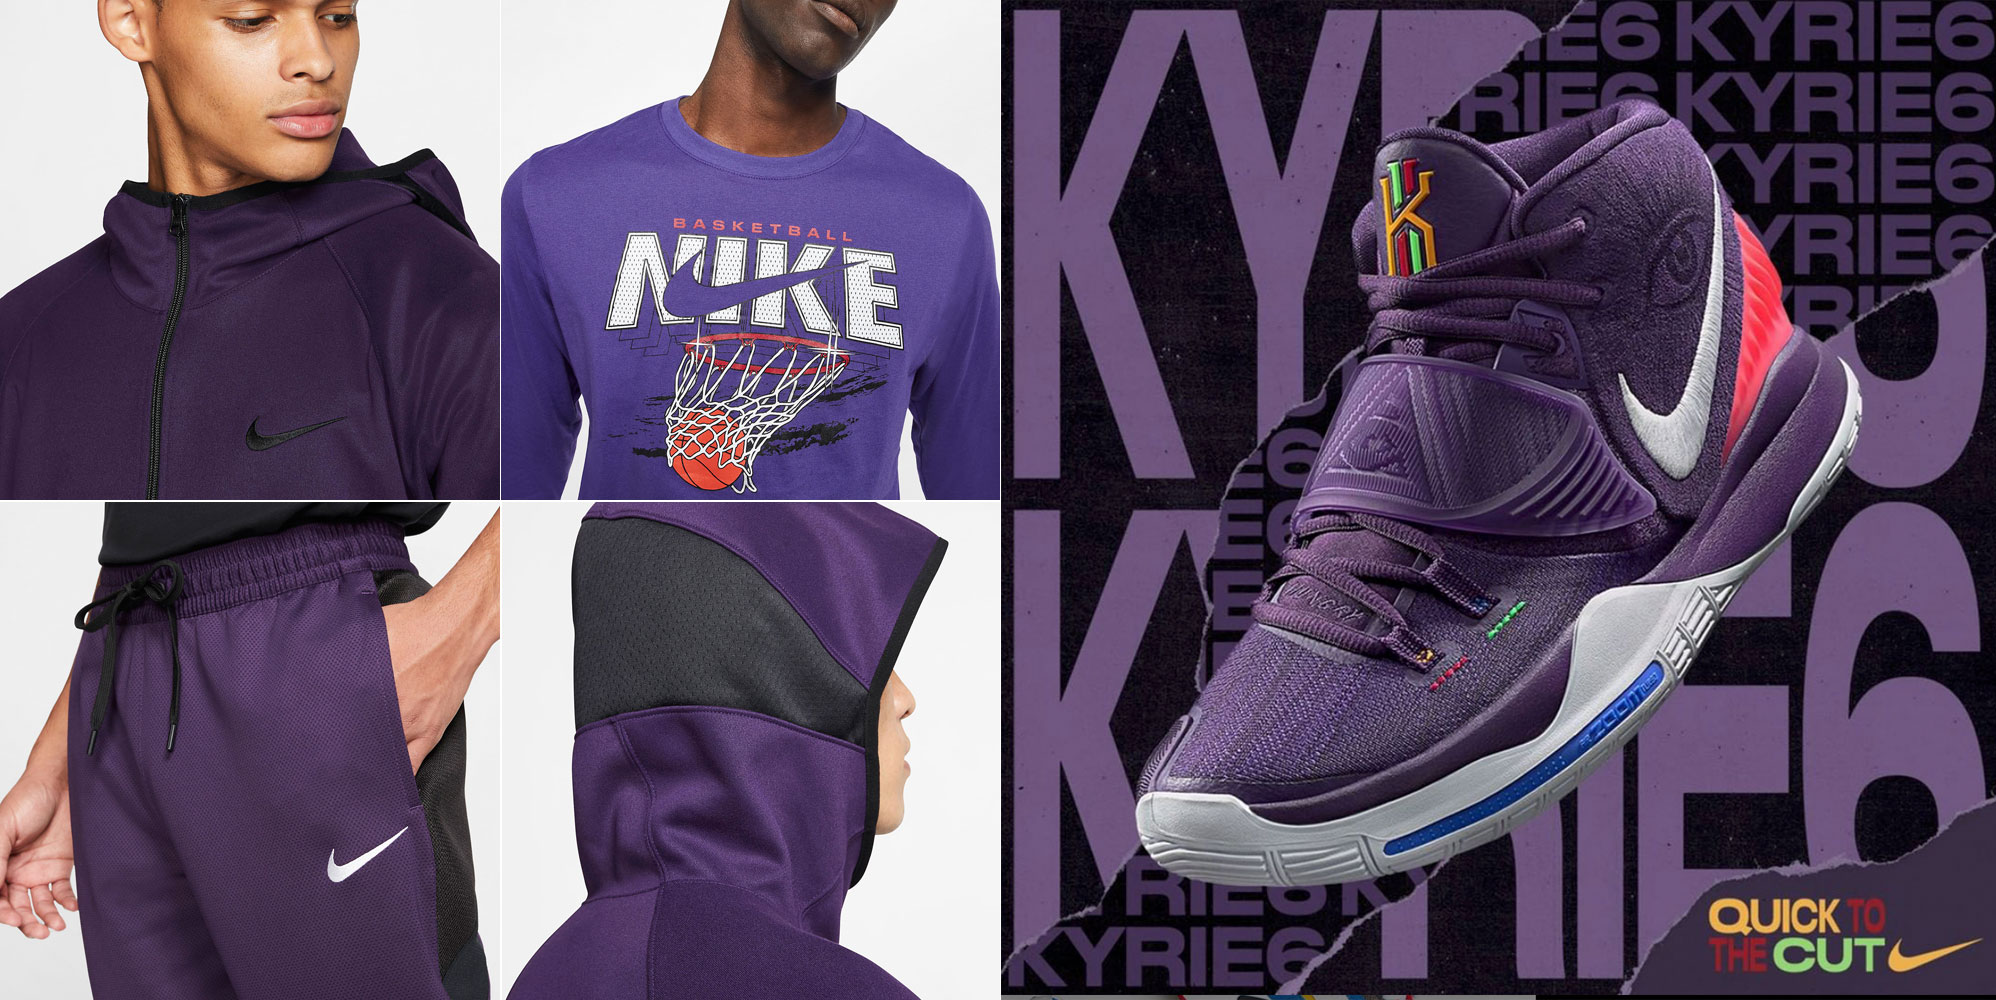 nike-kyrie-6-purple-enlightenment-clothing-outfits